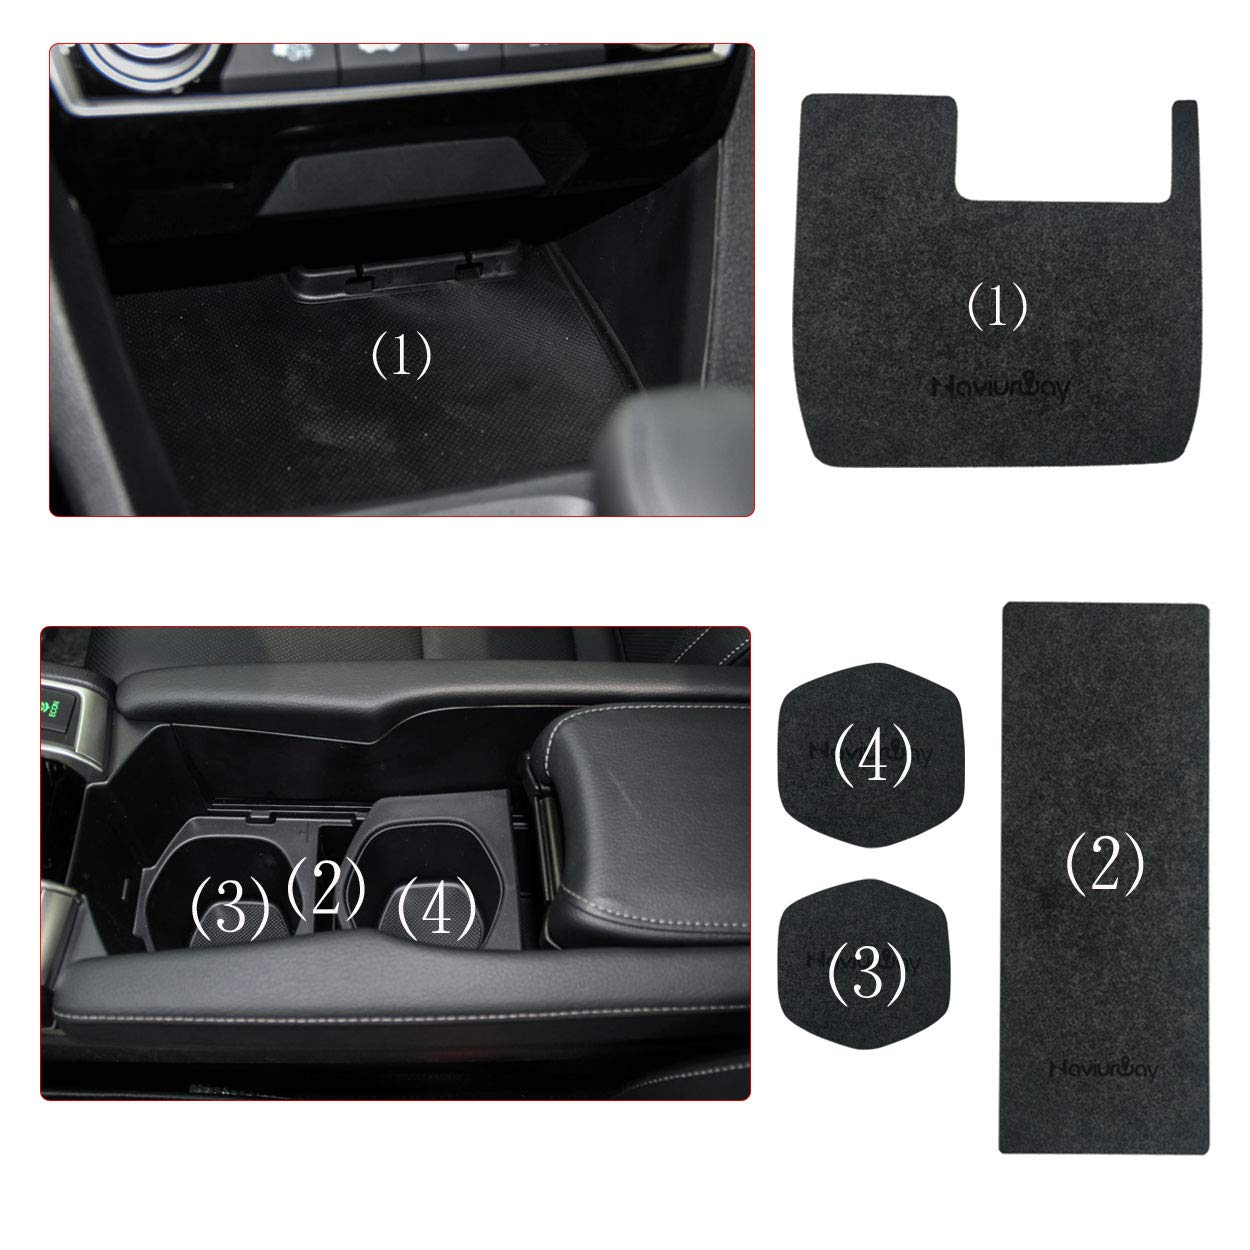 Naviurway Pack of 16 Custom Fit Car Central Console Mats Door Liner Accessories Cup Holder Mats Compatible with Honda Civic Sedan Hatchback 2016 2017 2018 2019 Dark Gray